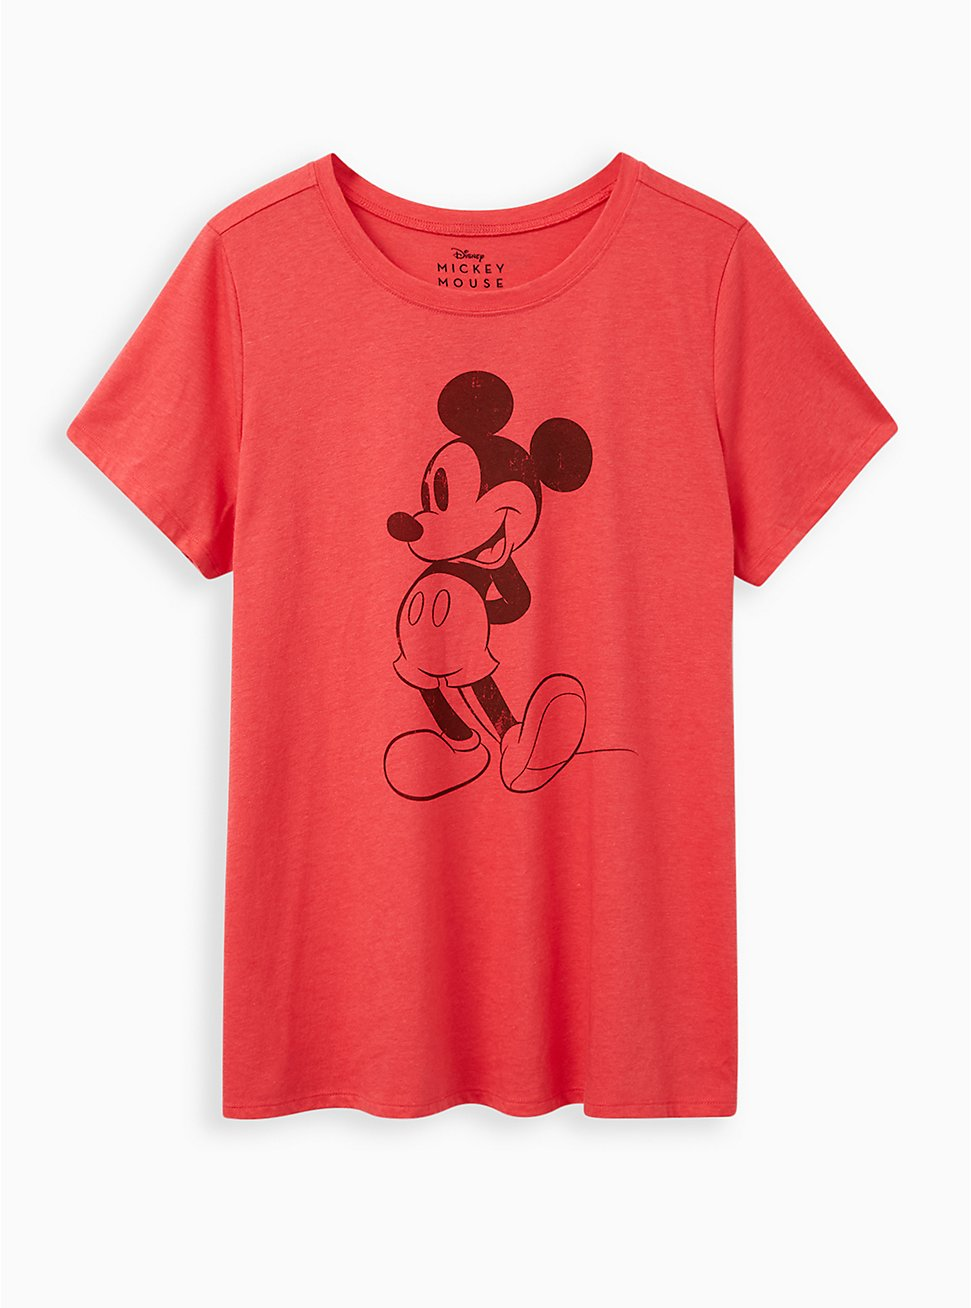 Plus Size Slim Fit Crew Tee - Red Mickey Mouse, TEABERRY, hi-res